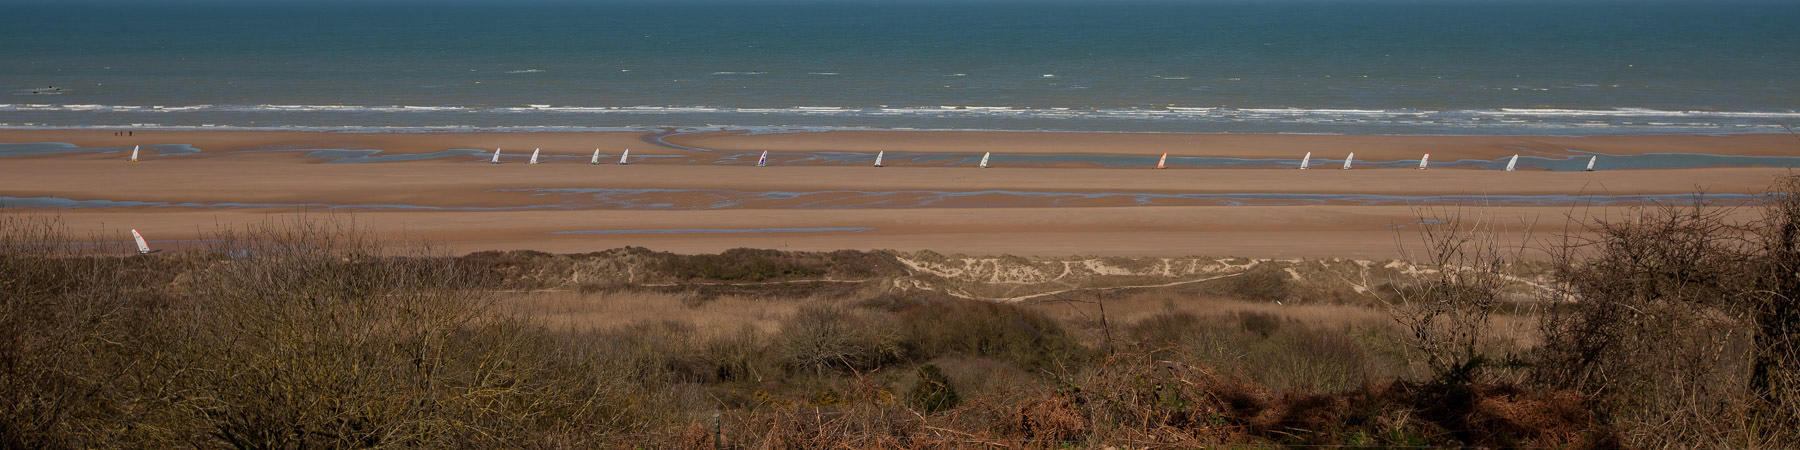 Char à voile à Omaha Beach - Photo Pêcheur d'Images